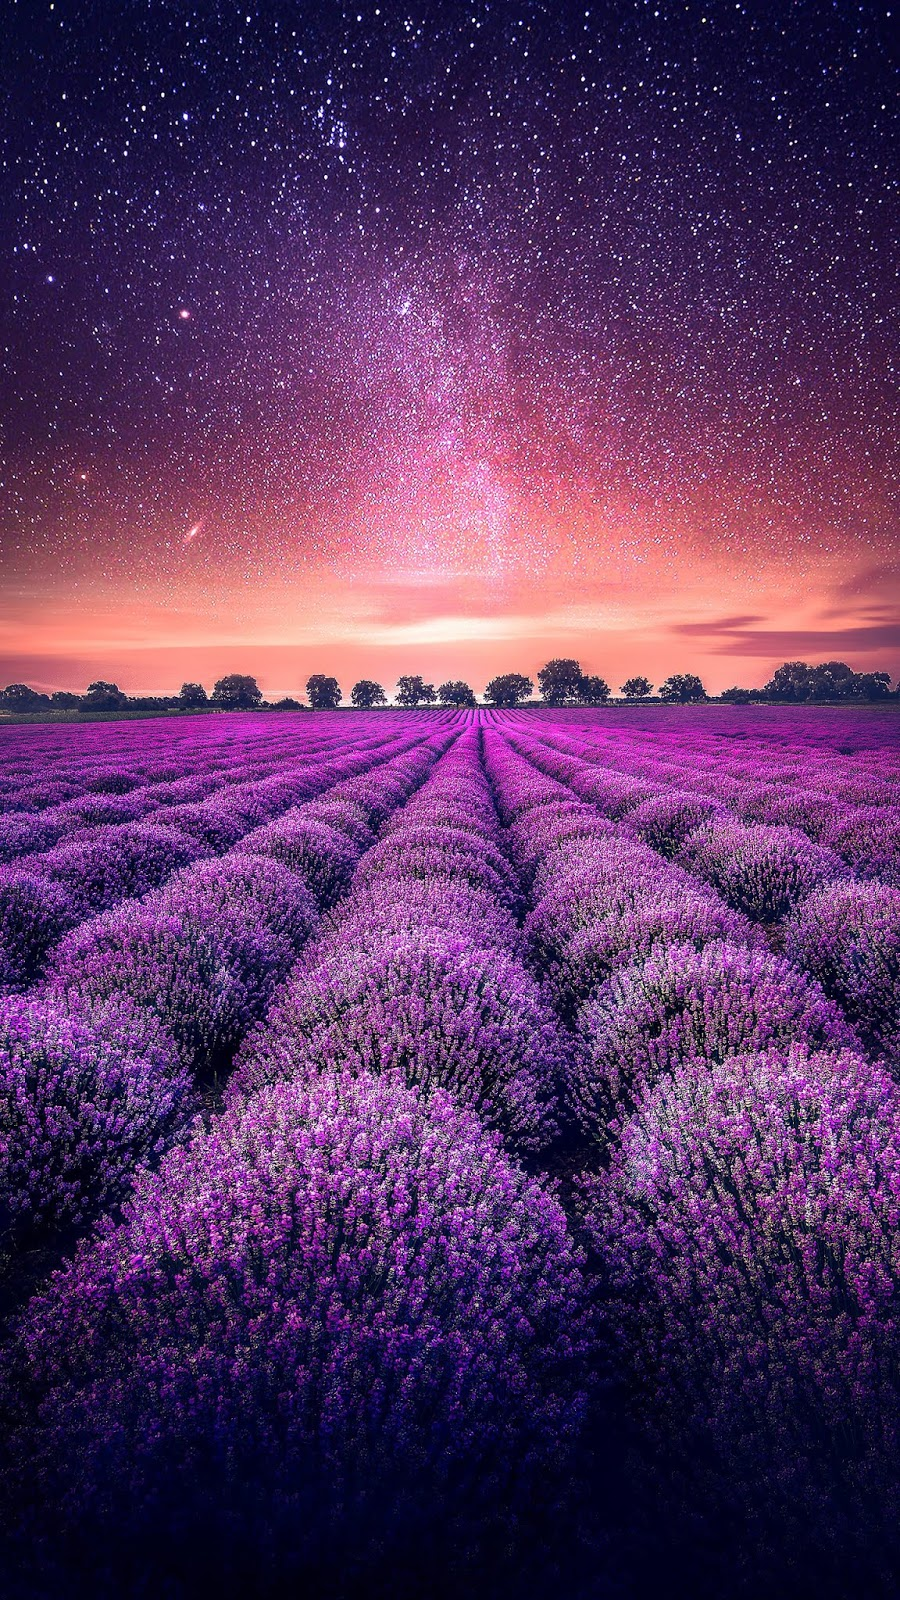 Lavenders field in the starry sky